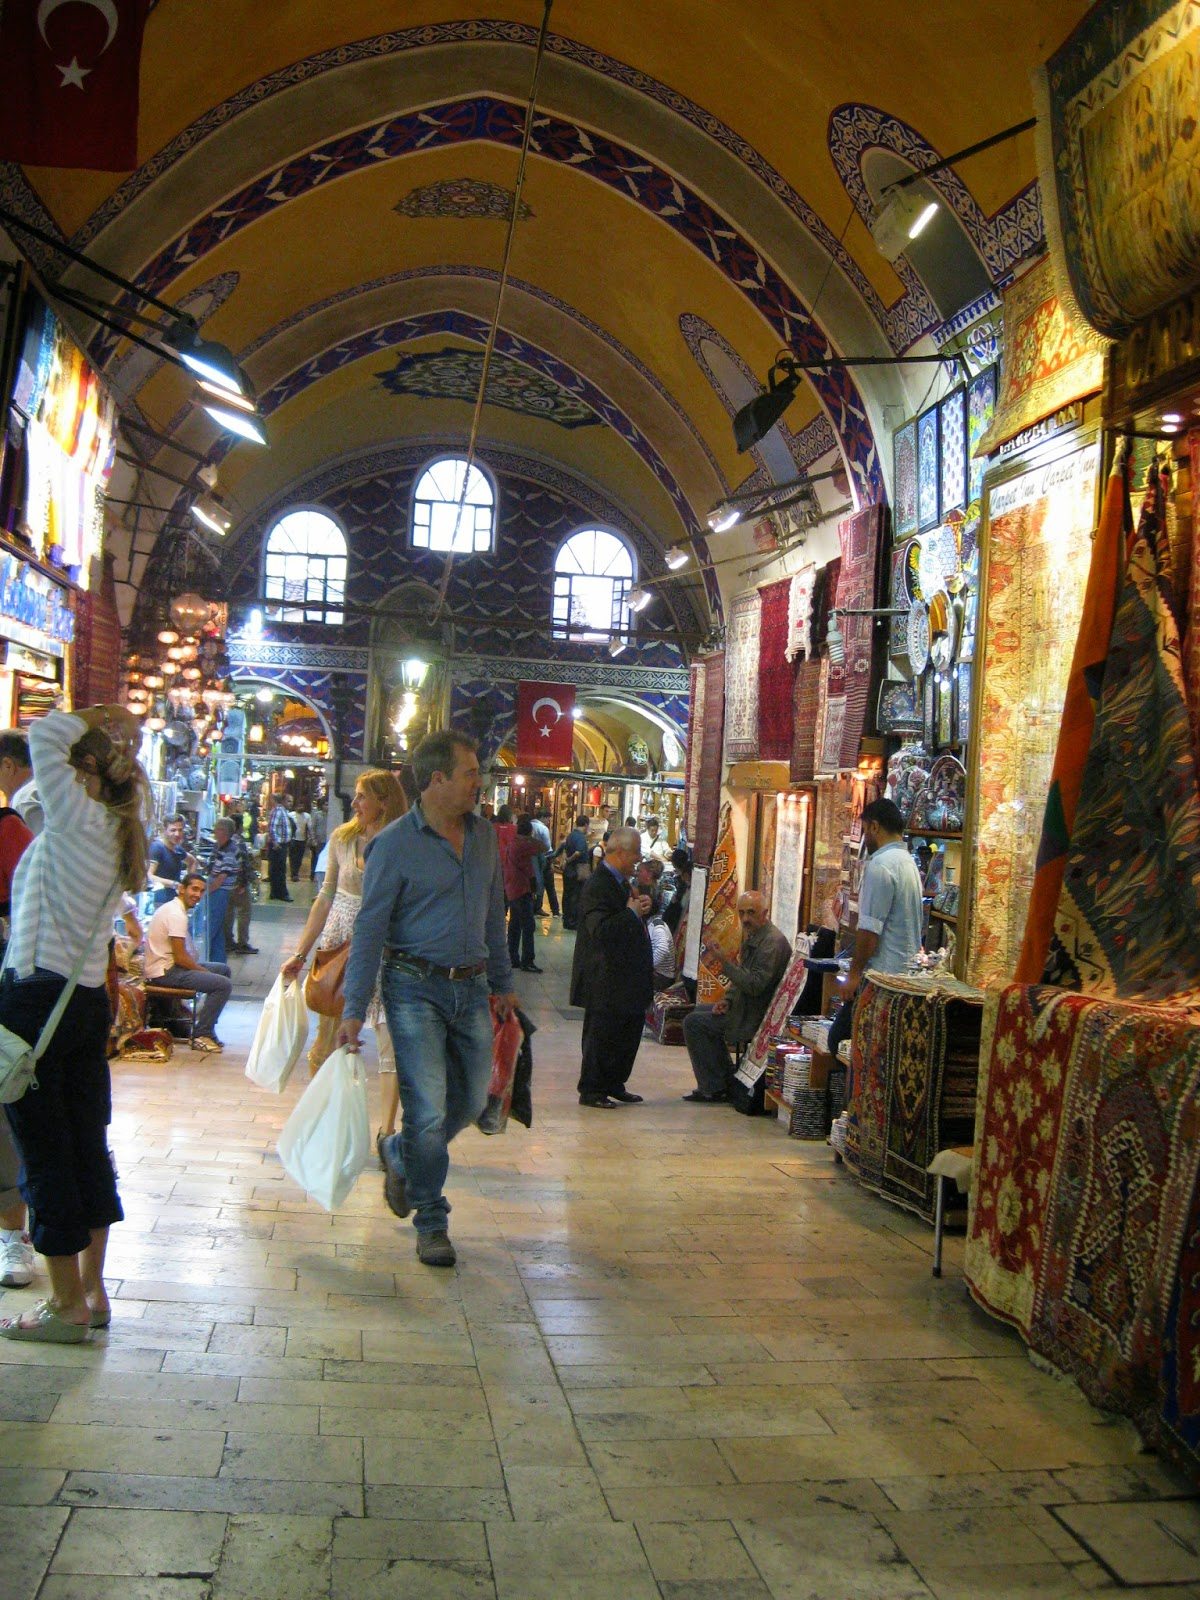 Istanbul - Merchants sell rugs, textiles, jewelry at the Grand Bazaar